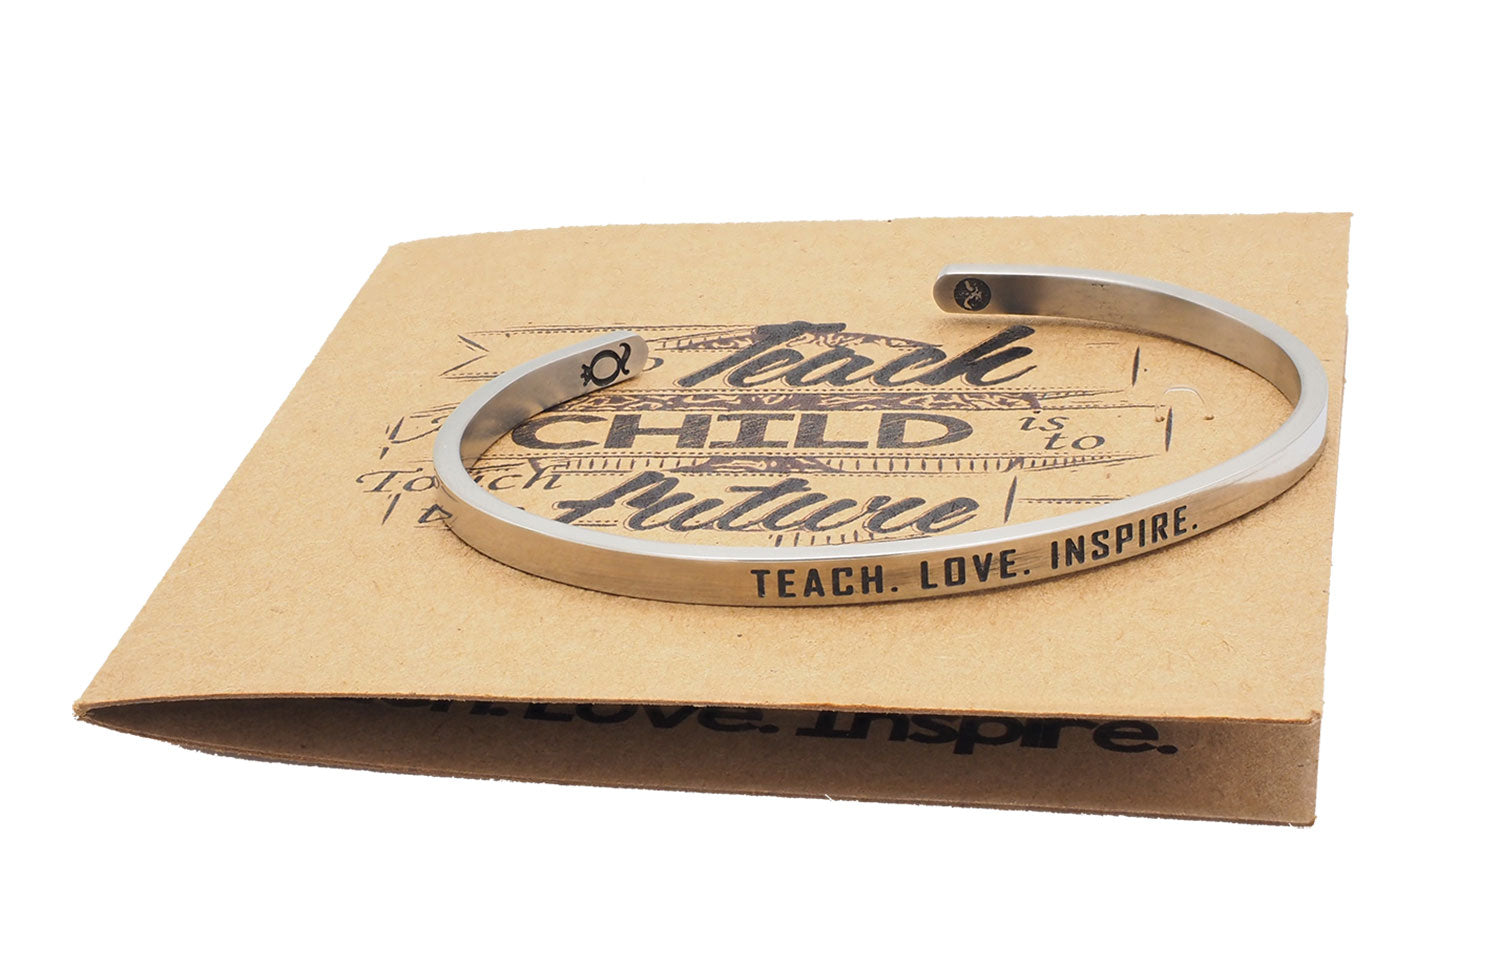 Kris Teach Love Inspire Inspirational Cuff Bracelet for Teachers